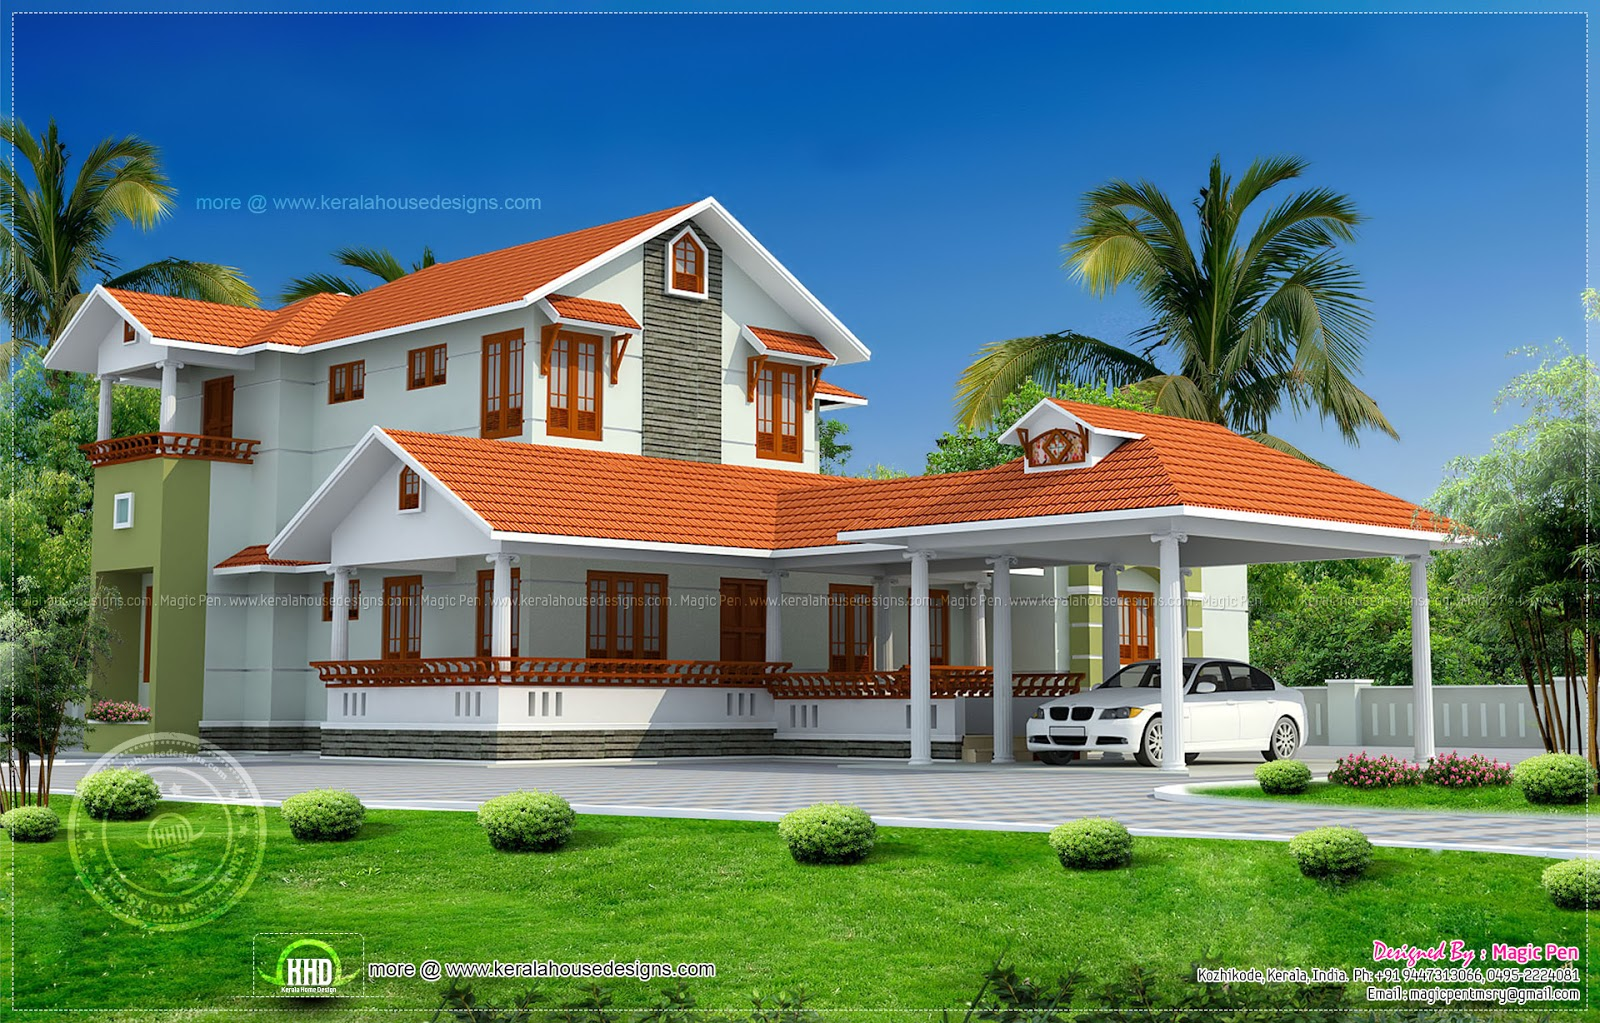 August 2013 kerala home design and floor plans for Kerala model house photos with details